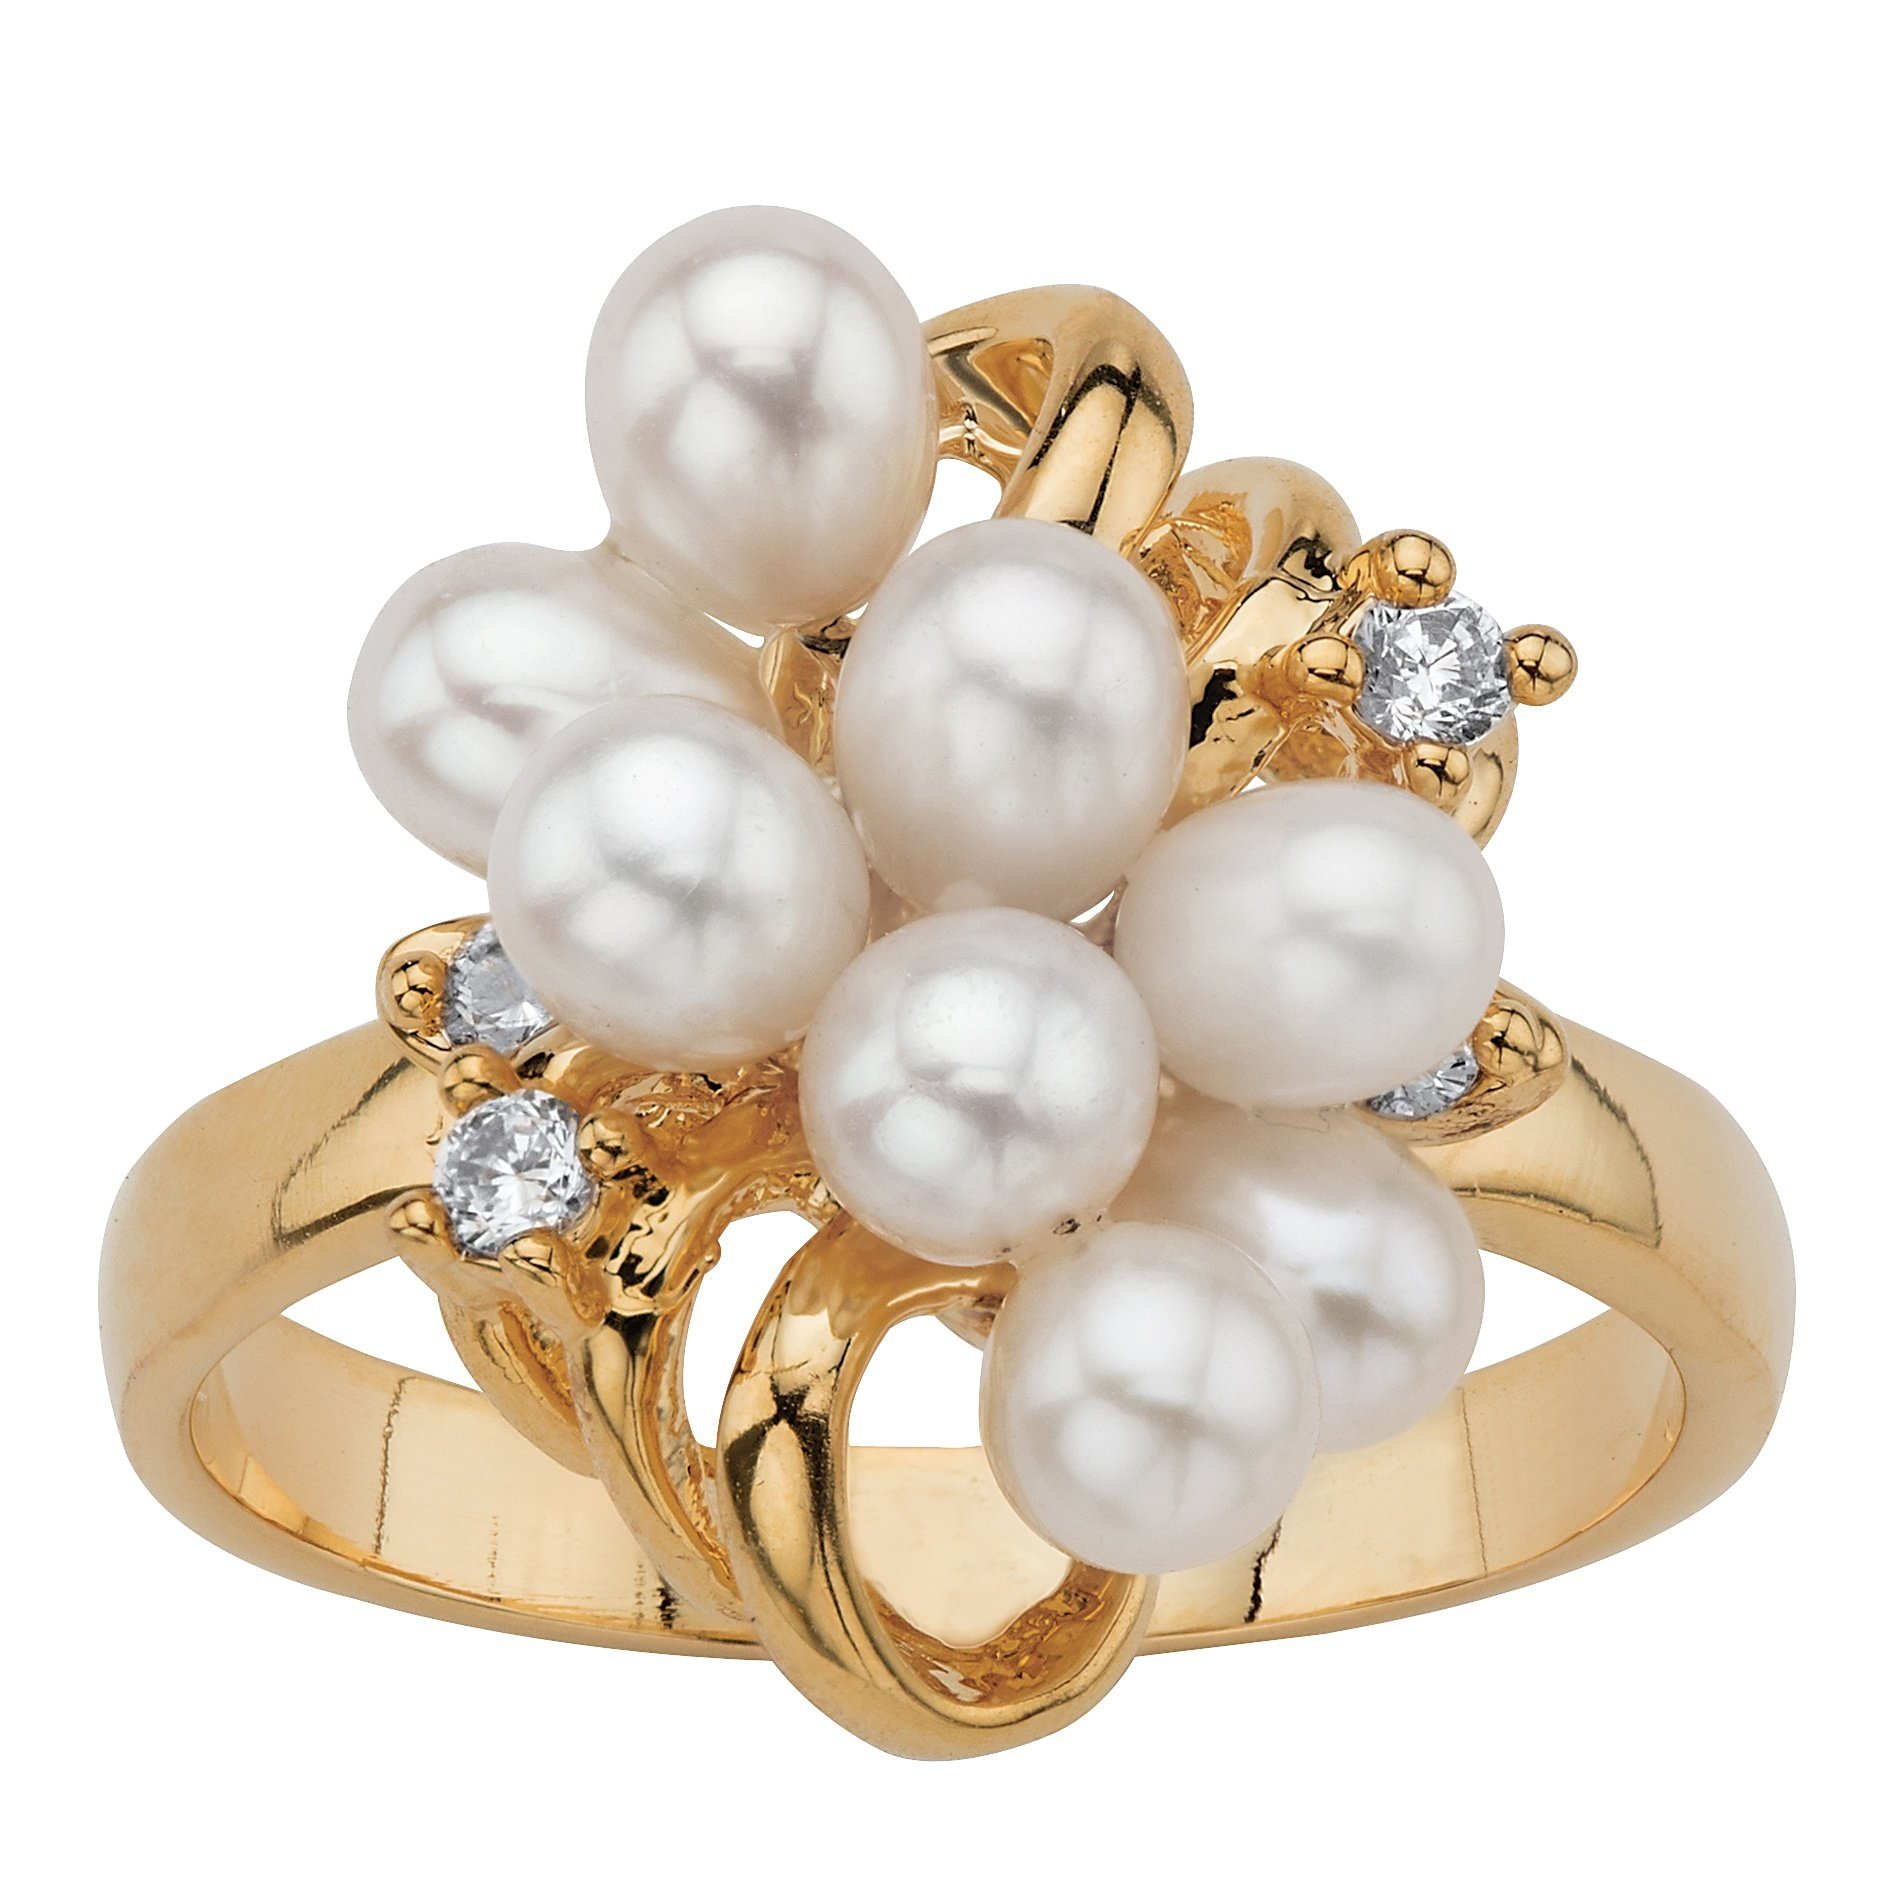 Palm Beach Jewelry White Cultured Freshwater Pearl Crystal Accent 14k Yellow Gold-Plated Cluster Cocktail Ring Size 9